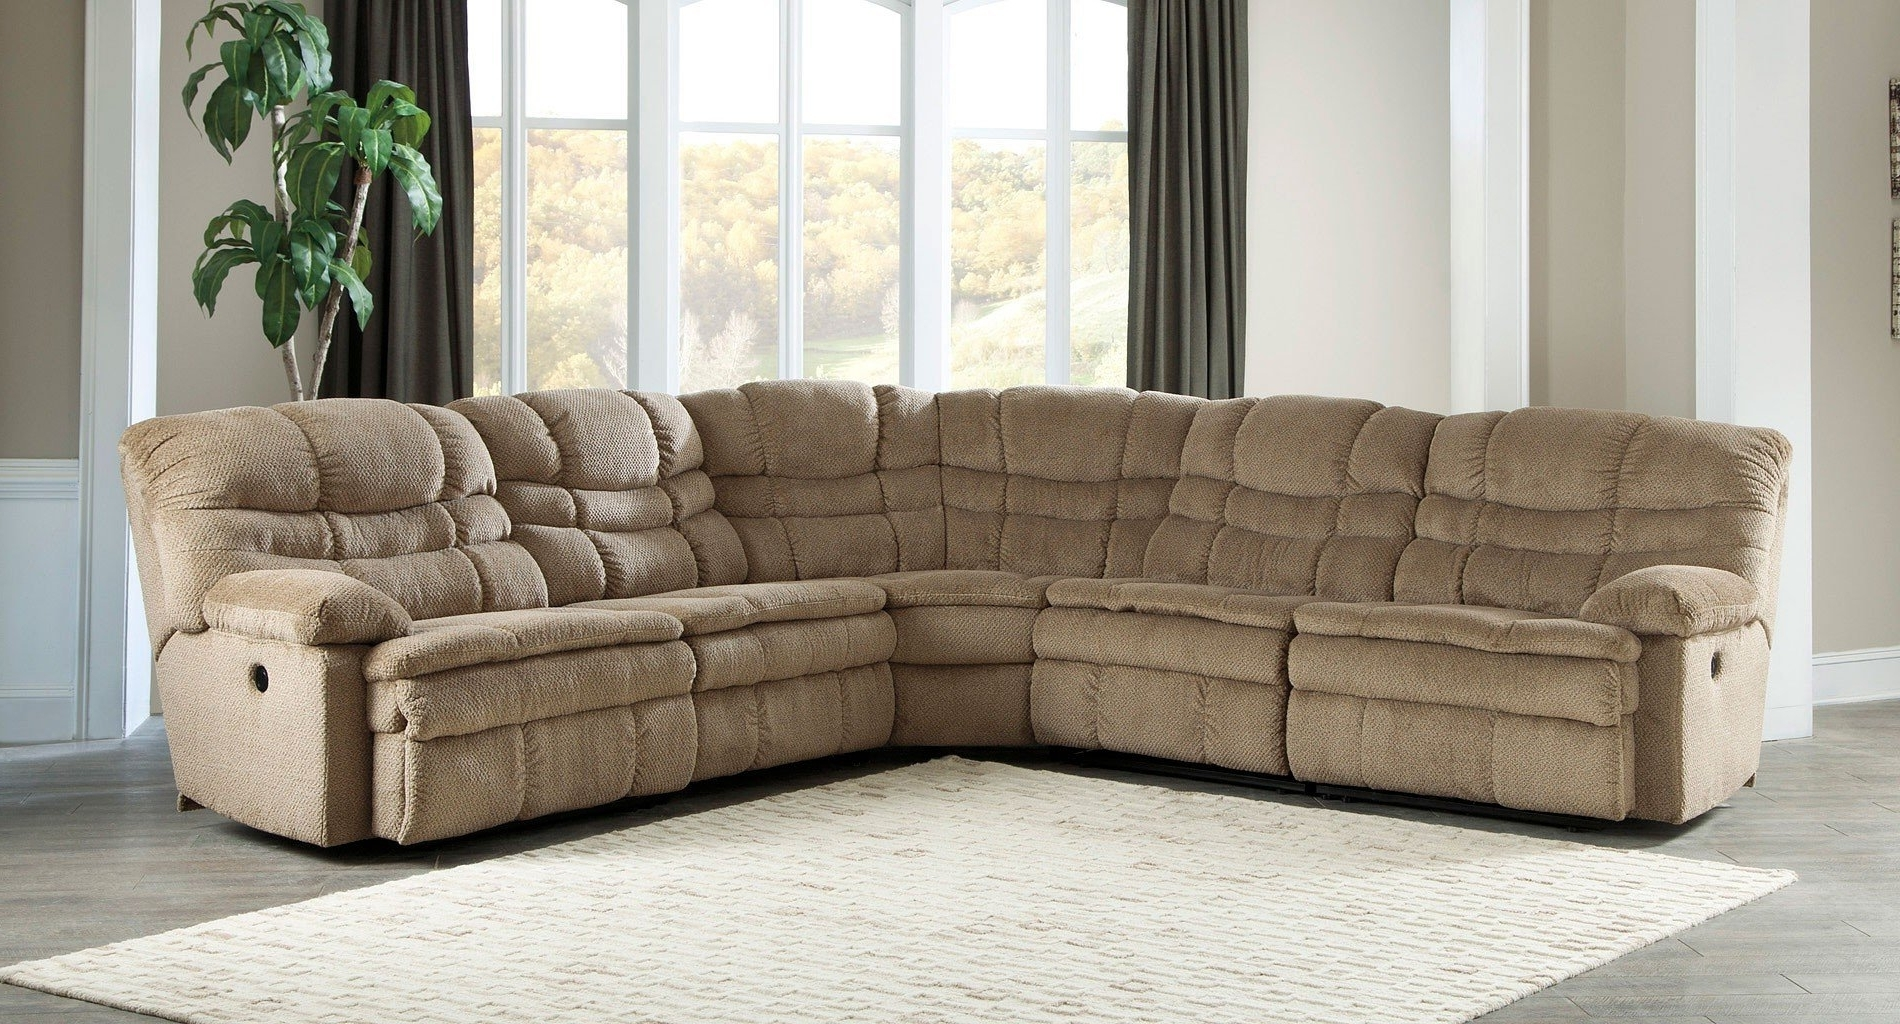 New Orleans Sectional Sofas Inside Newest Zavion Caramel Modular Reclining Sectional – Sectionals – Living (View 7 of 15)